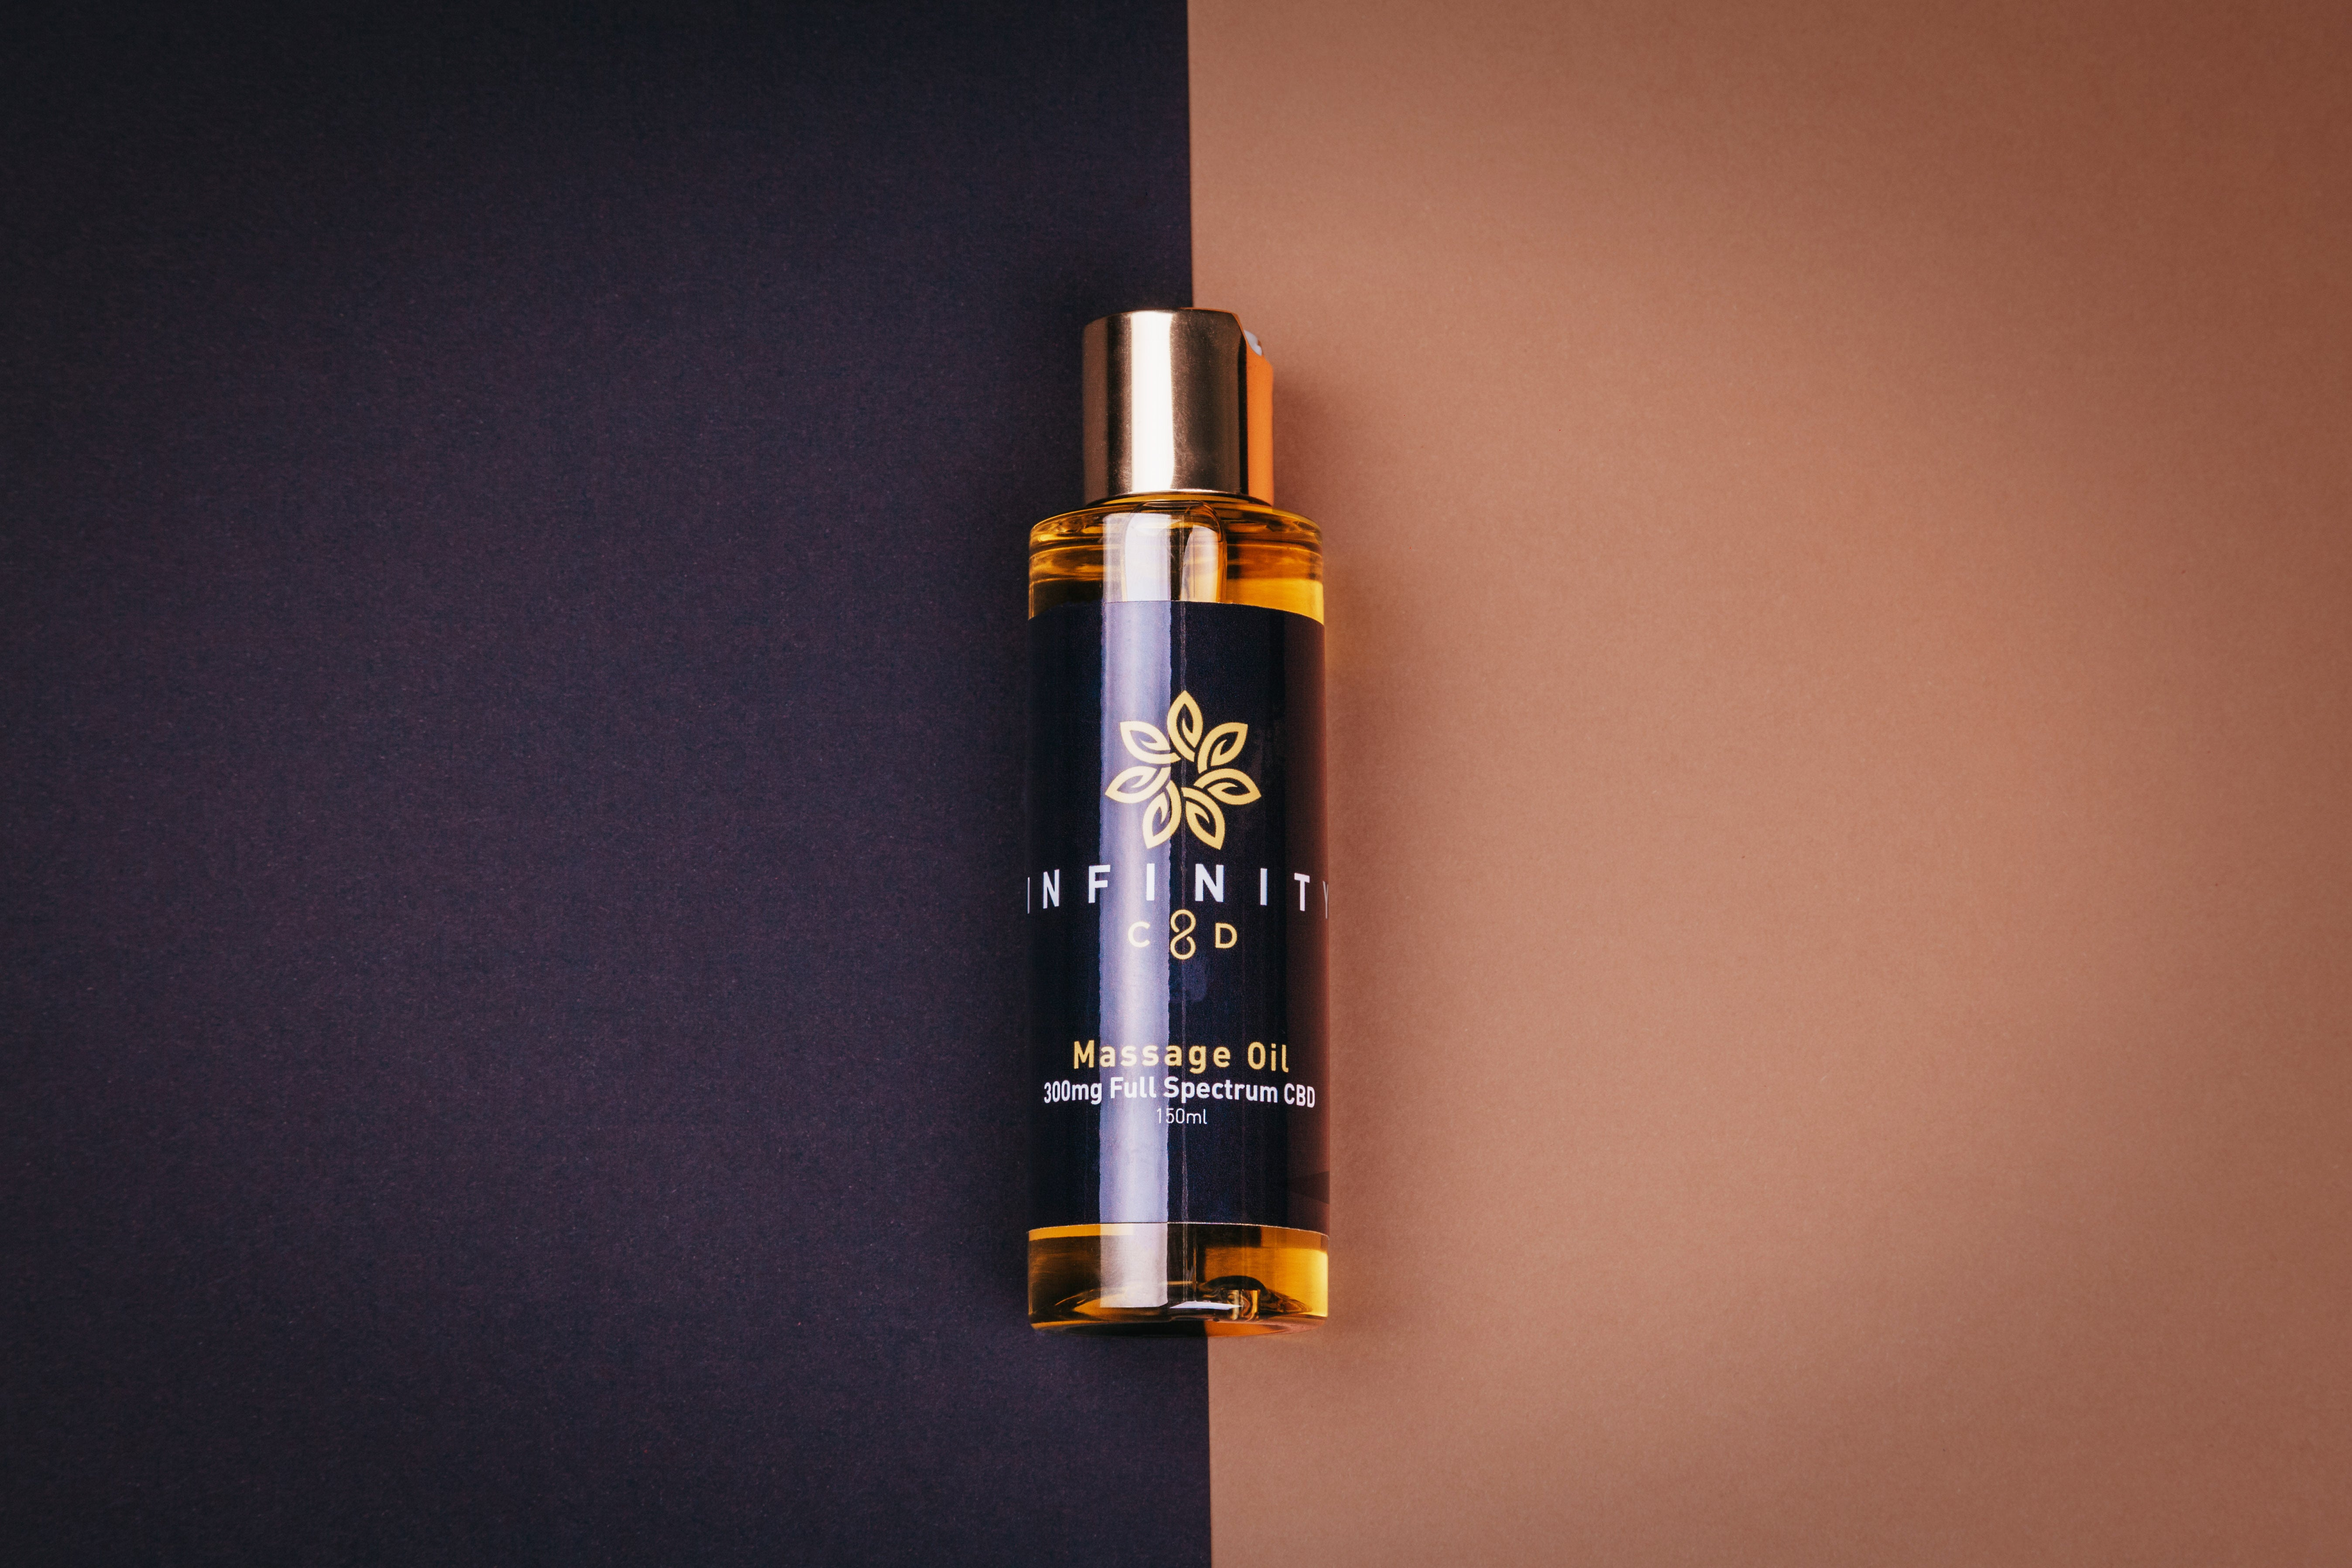 Infinity CBD CBD Massage Oil Made in Wales All Natural Lavender, Chamomile and Peppermint